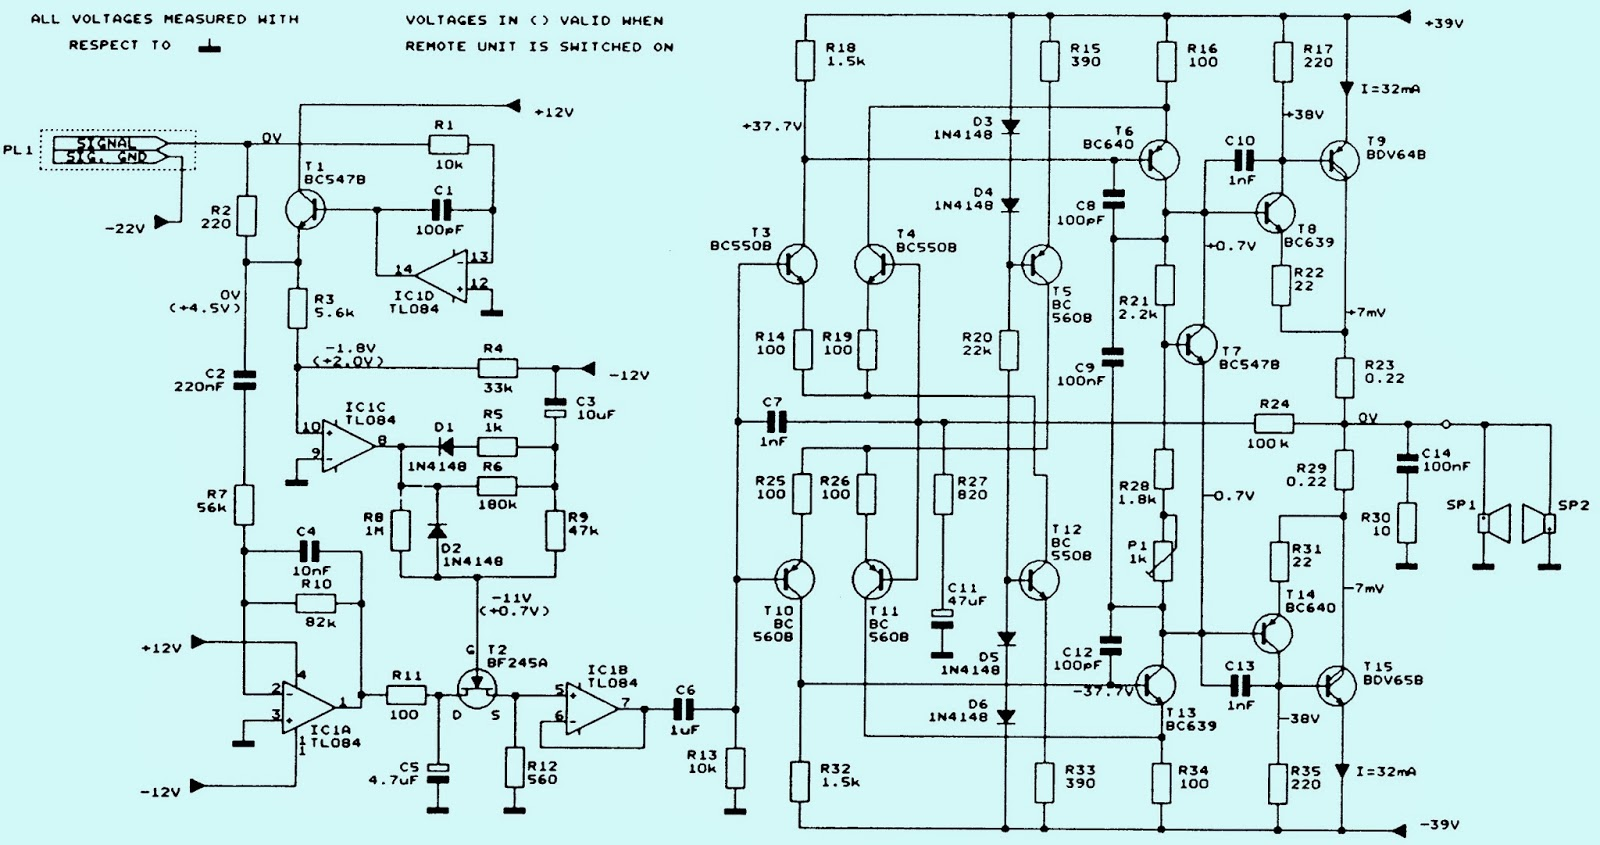 jamo sub 250 circuit diagram collections